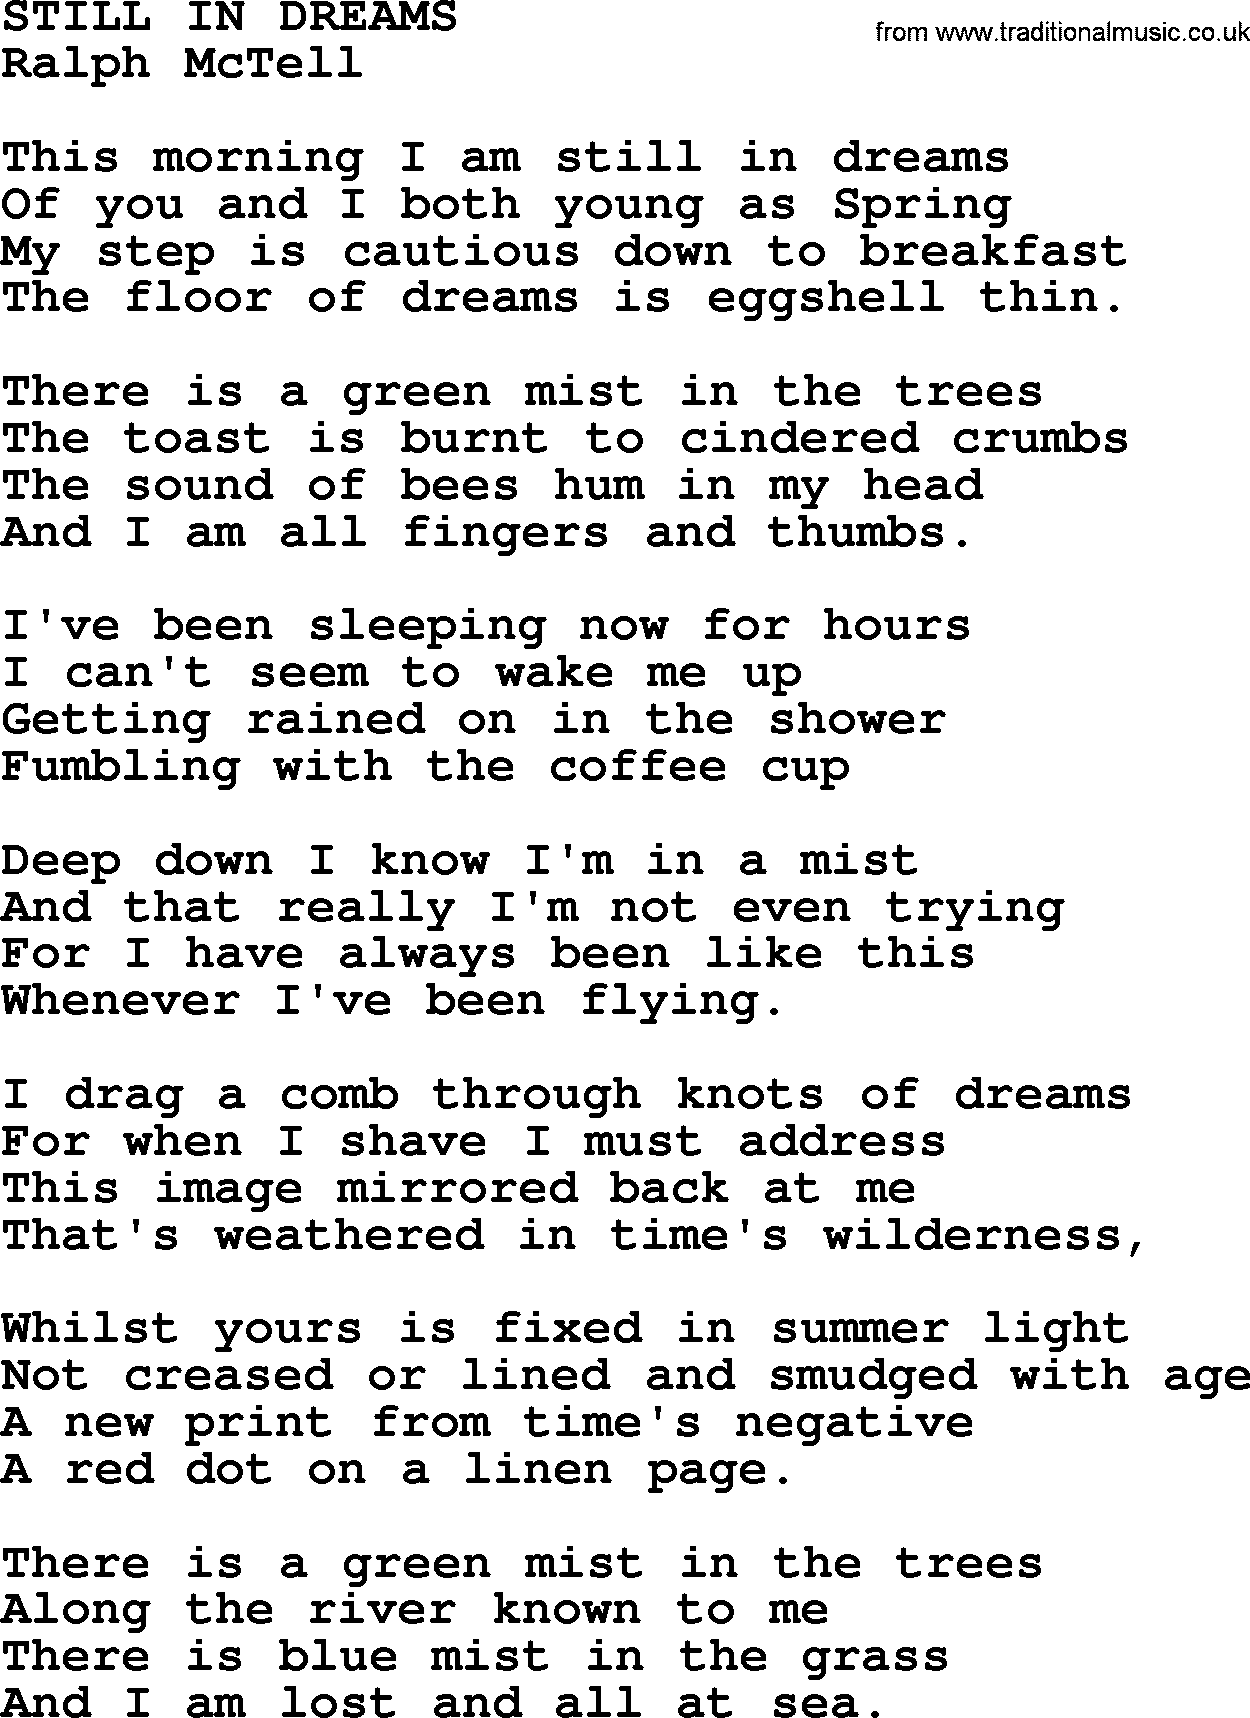 Still In Dreams txt - by Ralph McTell lyrics and chords